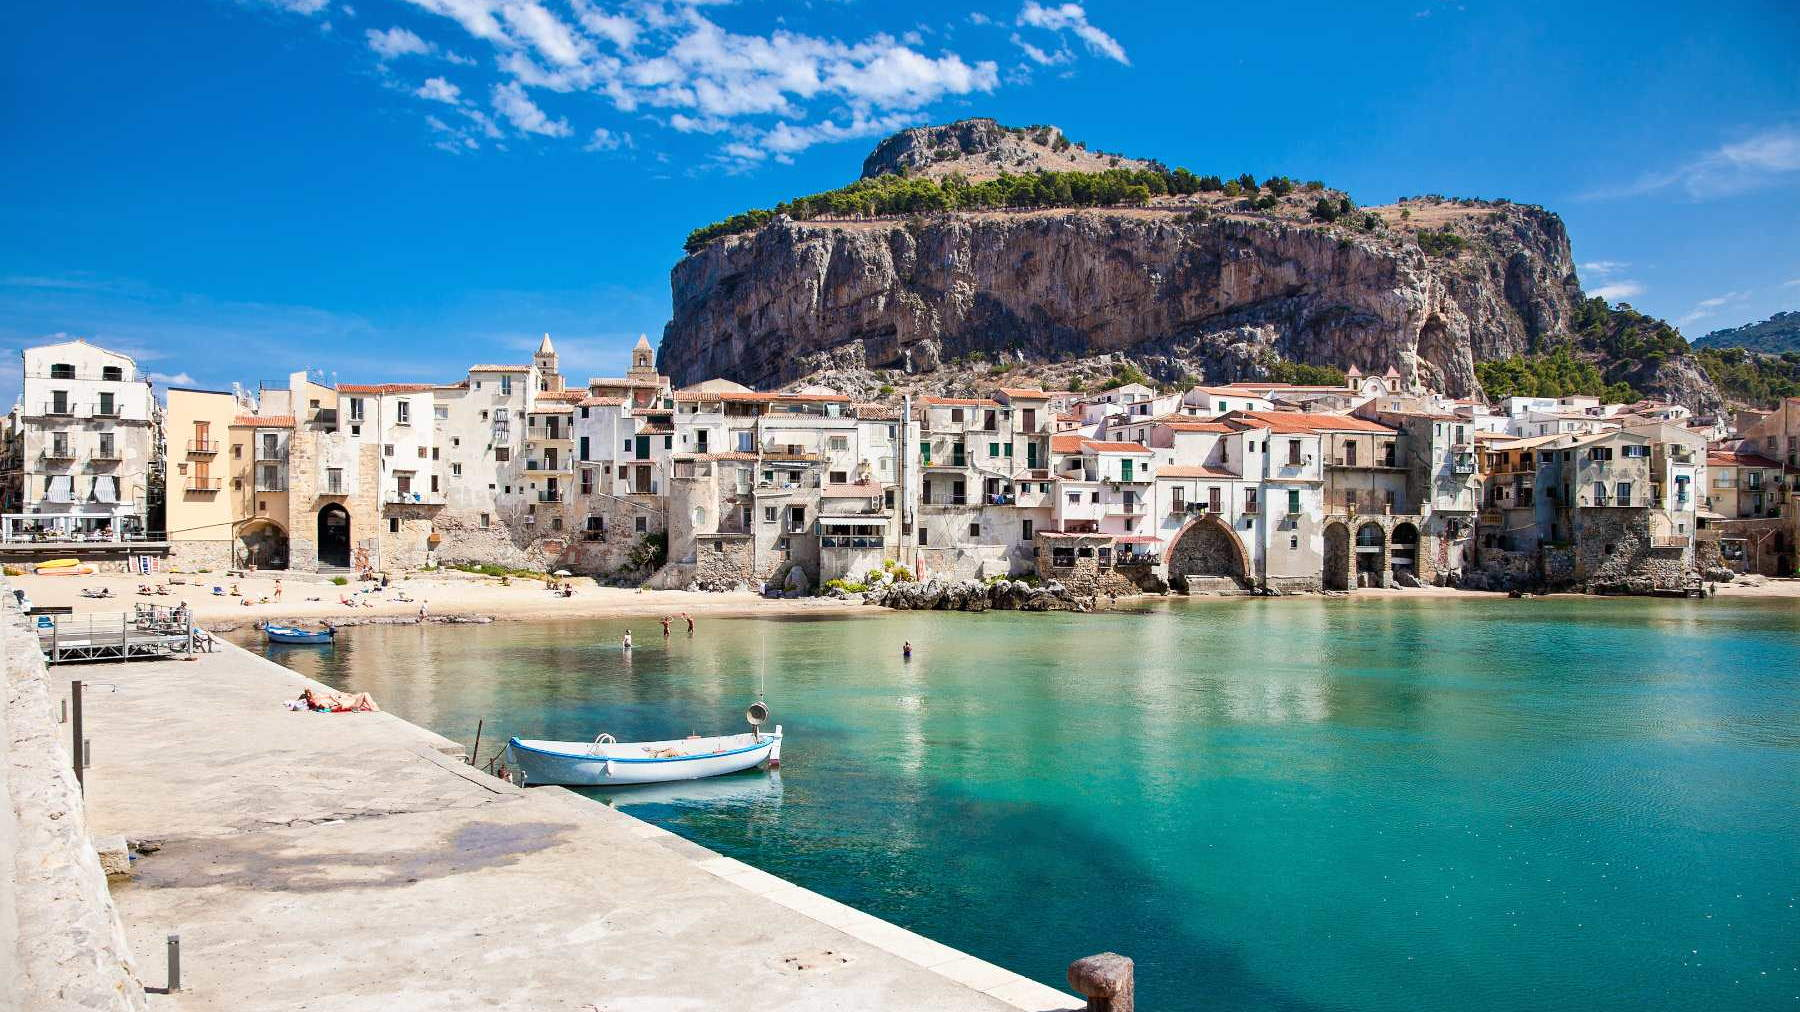 Cefalu Italy  City pictures : ... photo gallery and movies of Cefalù, Sicily Italy ItalyGuides.it